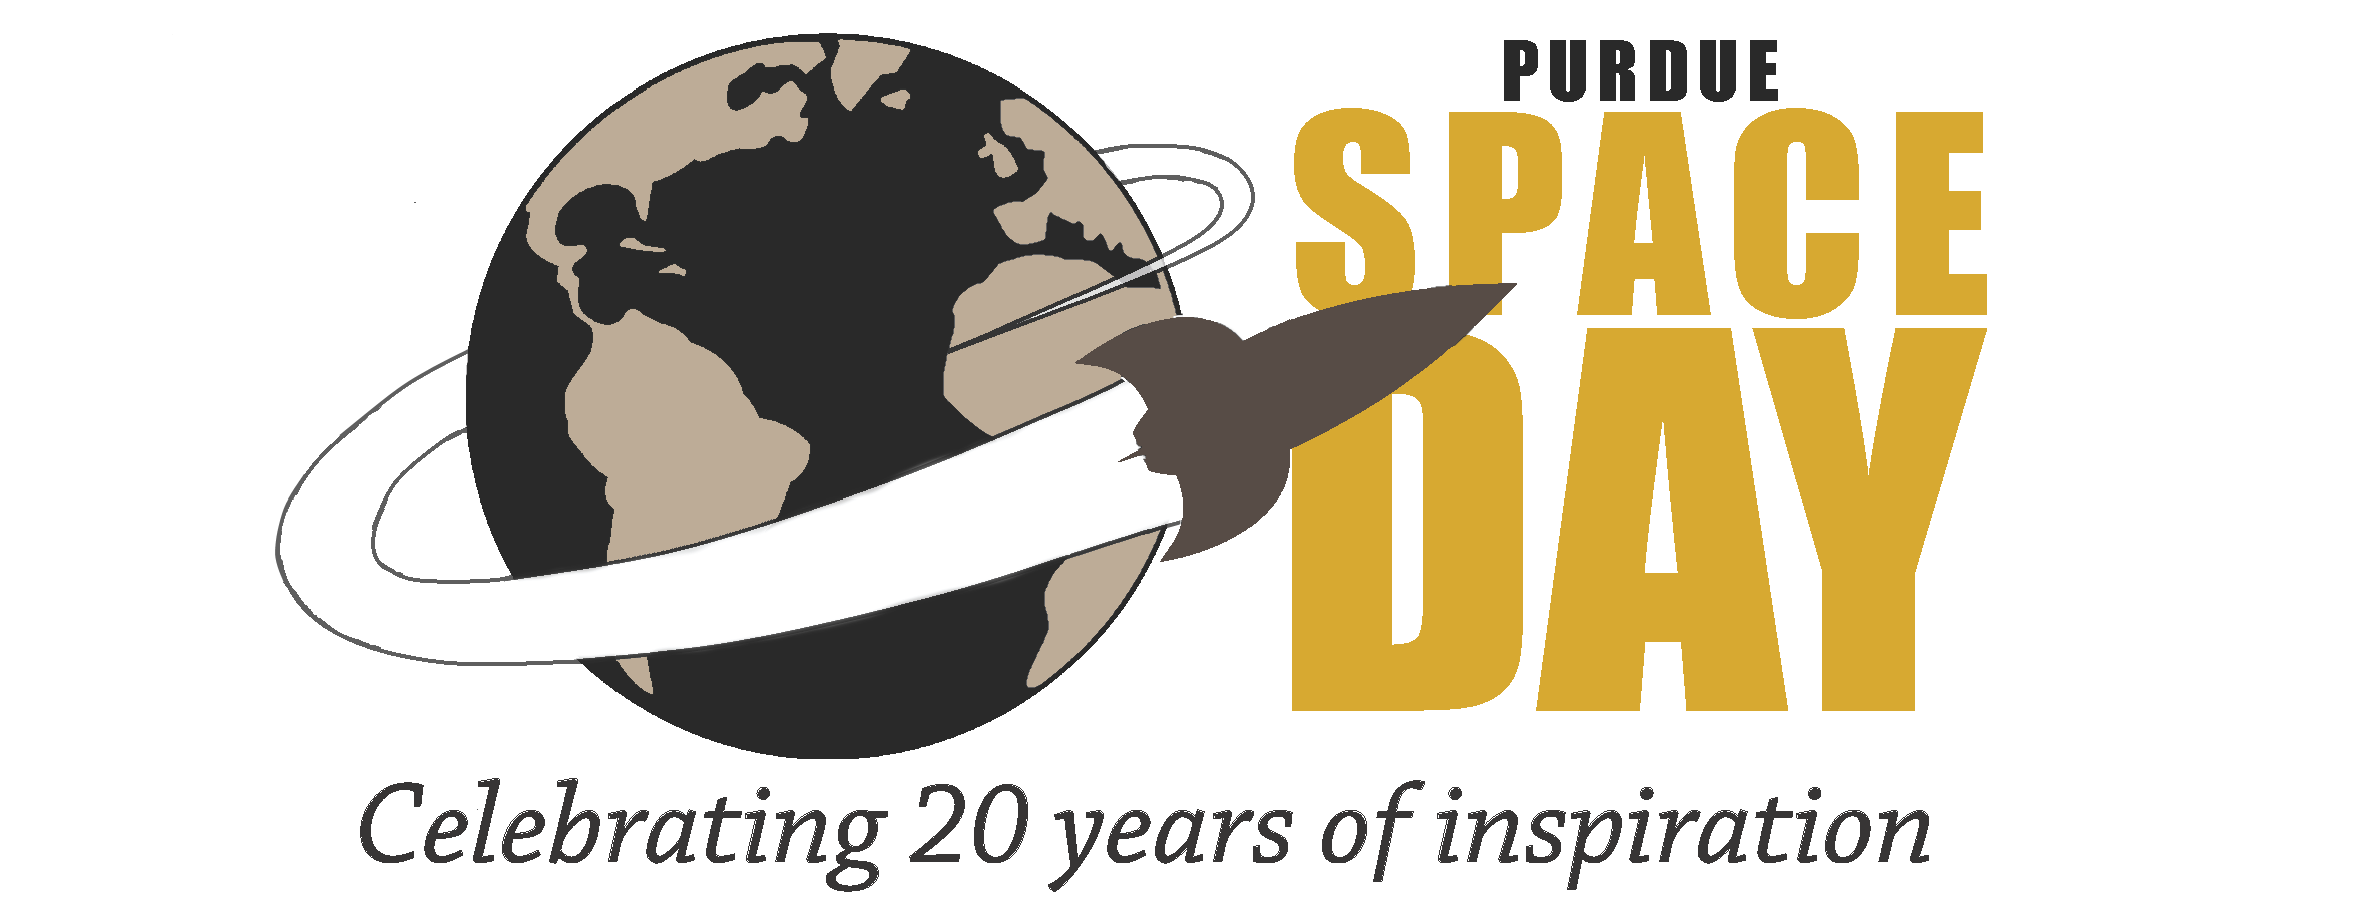 Buzz Aldrin Astronaut Apollo 11, Gemini 12 » Buzz at Purdue Space Day.